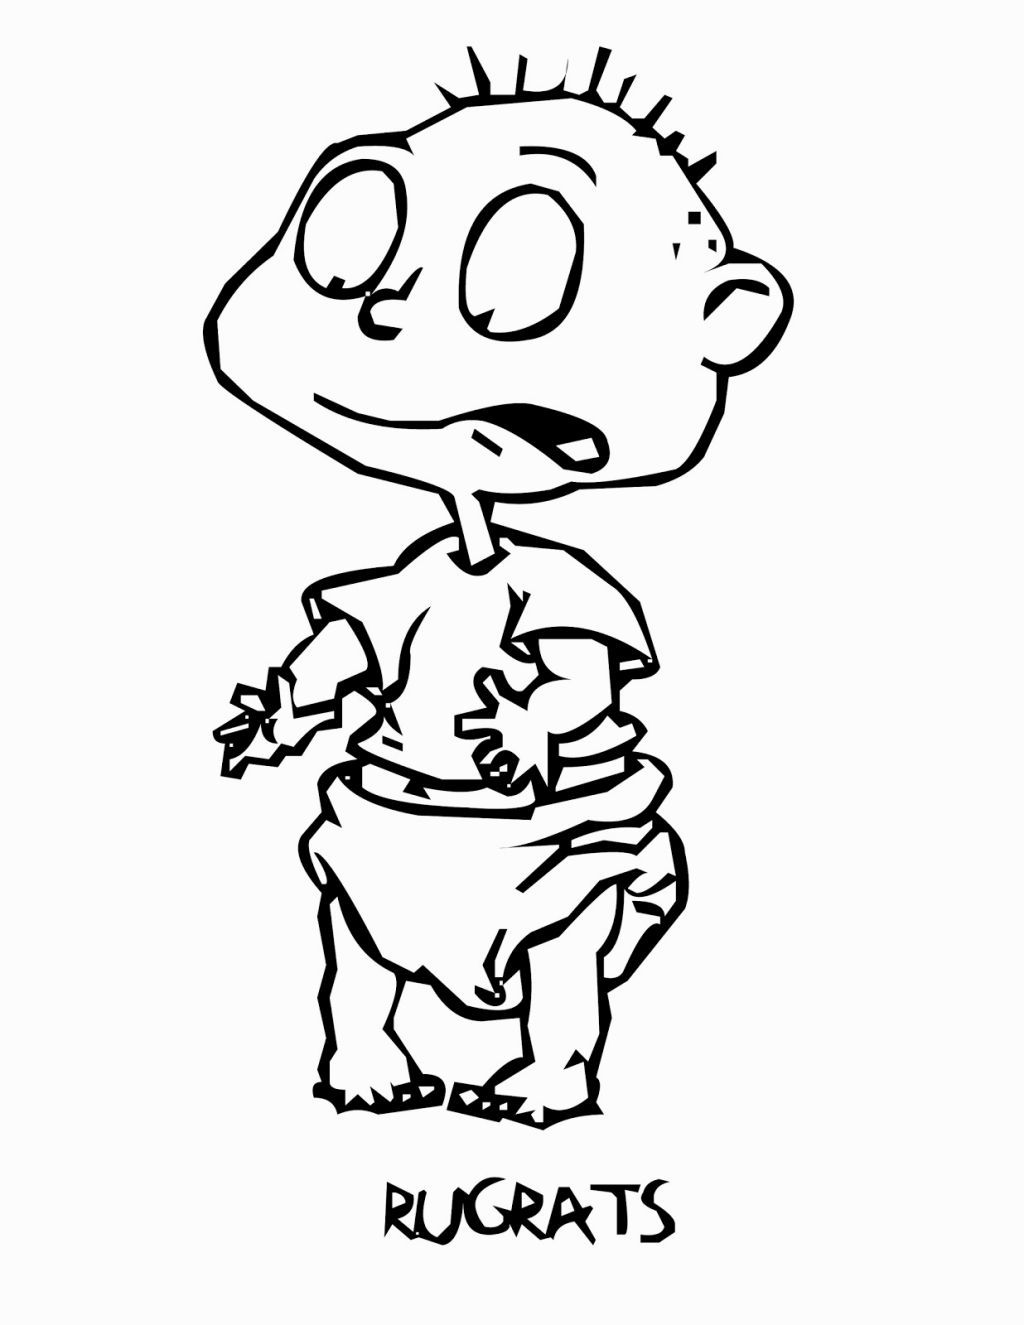 Rugrats Coloring Book Coloring Pages Pinterest Rugrats And